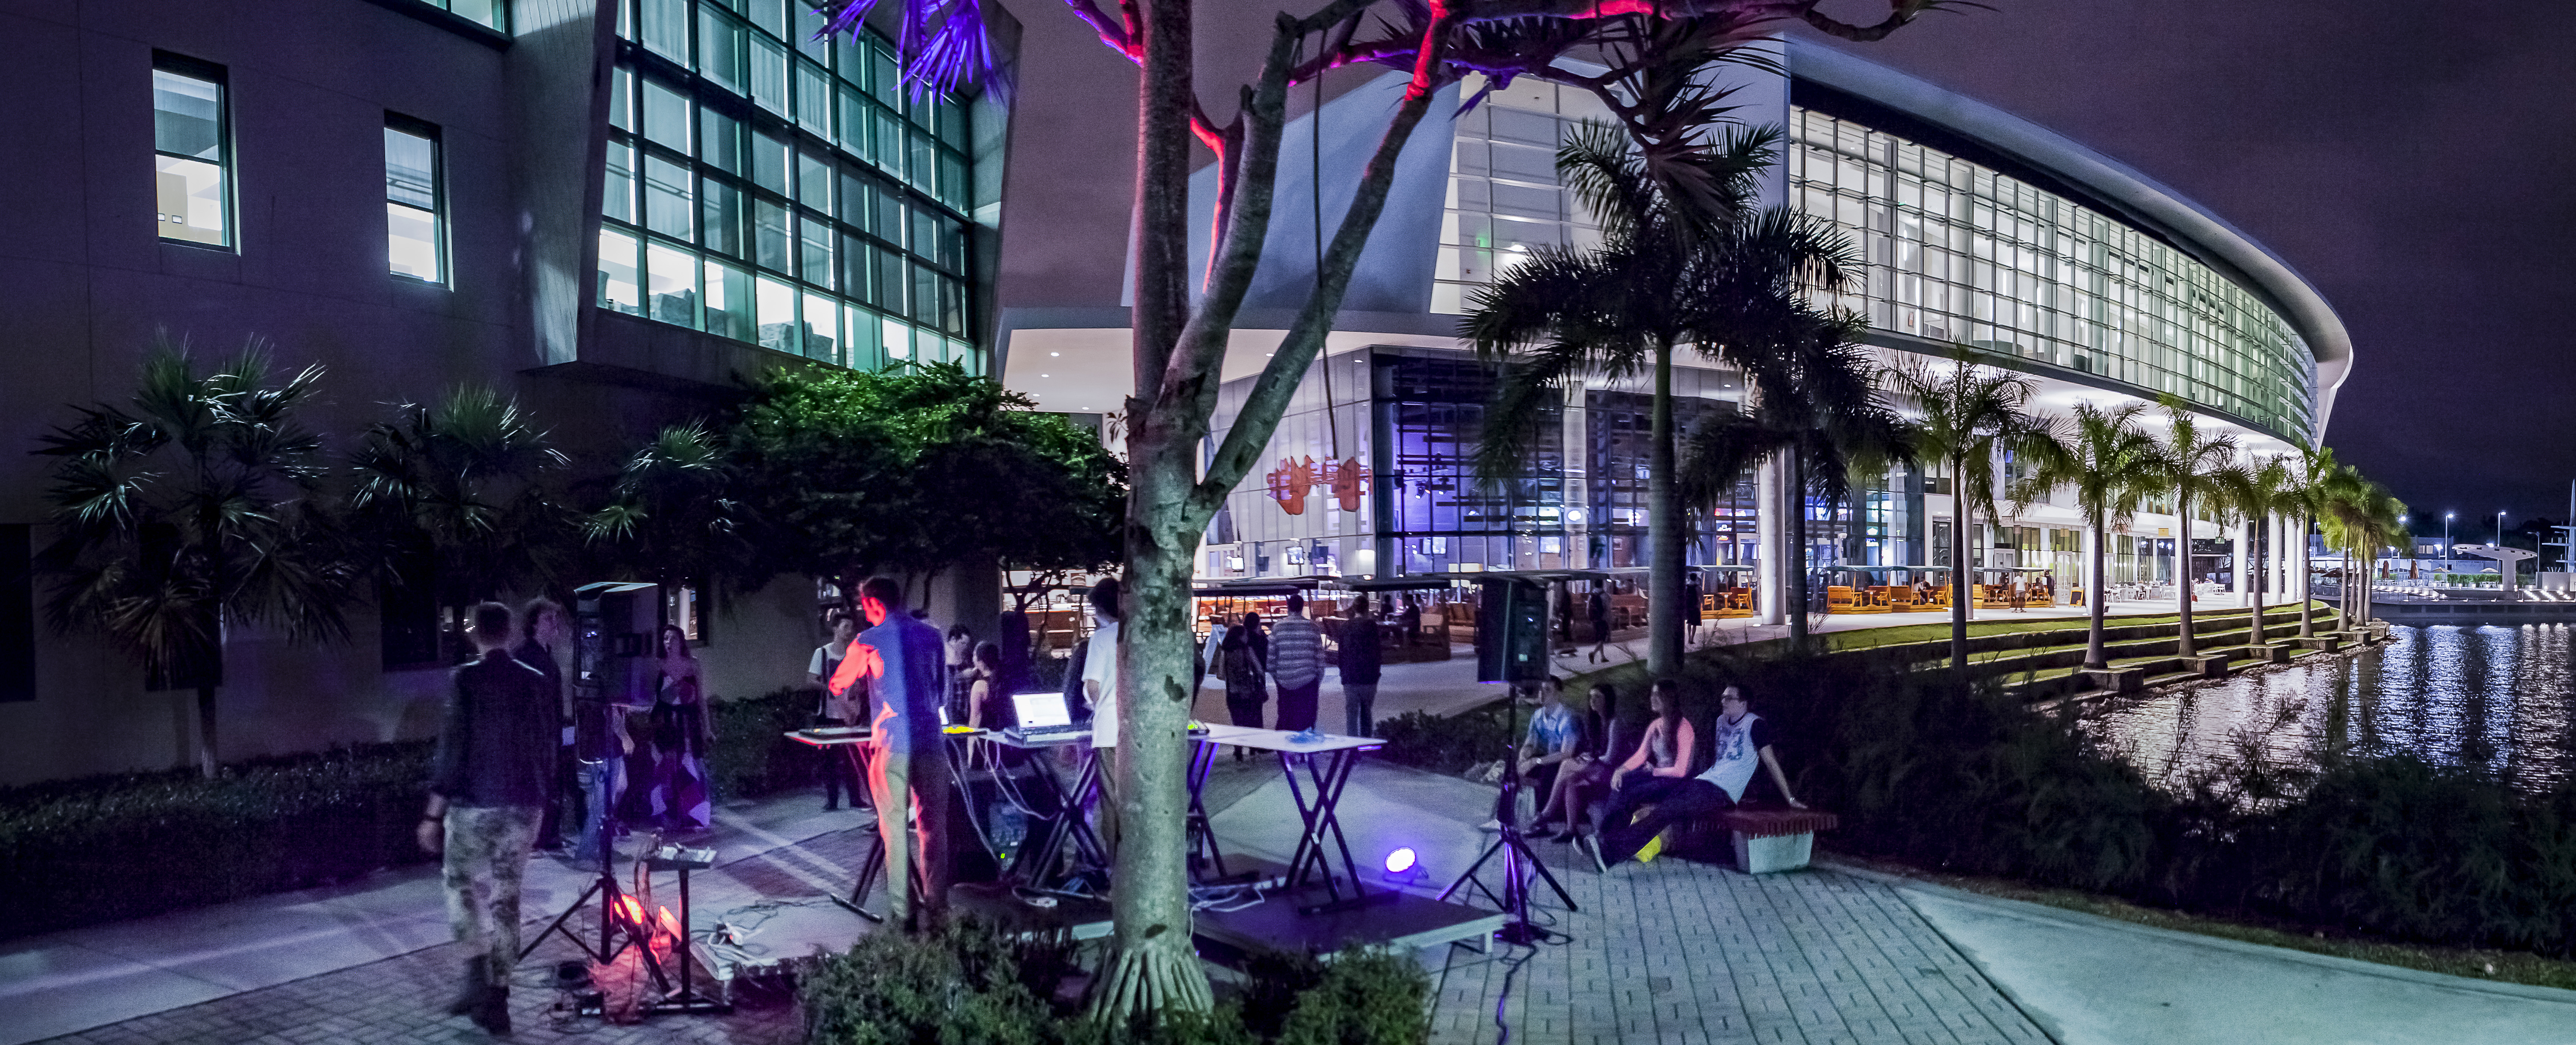 A pair of musicians playing electronic music in a impromptu setup while some spectators observe, at the University of Miami campus.